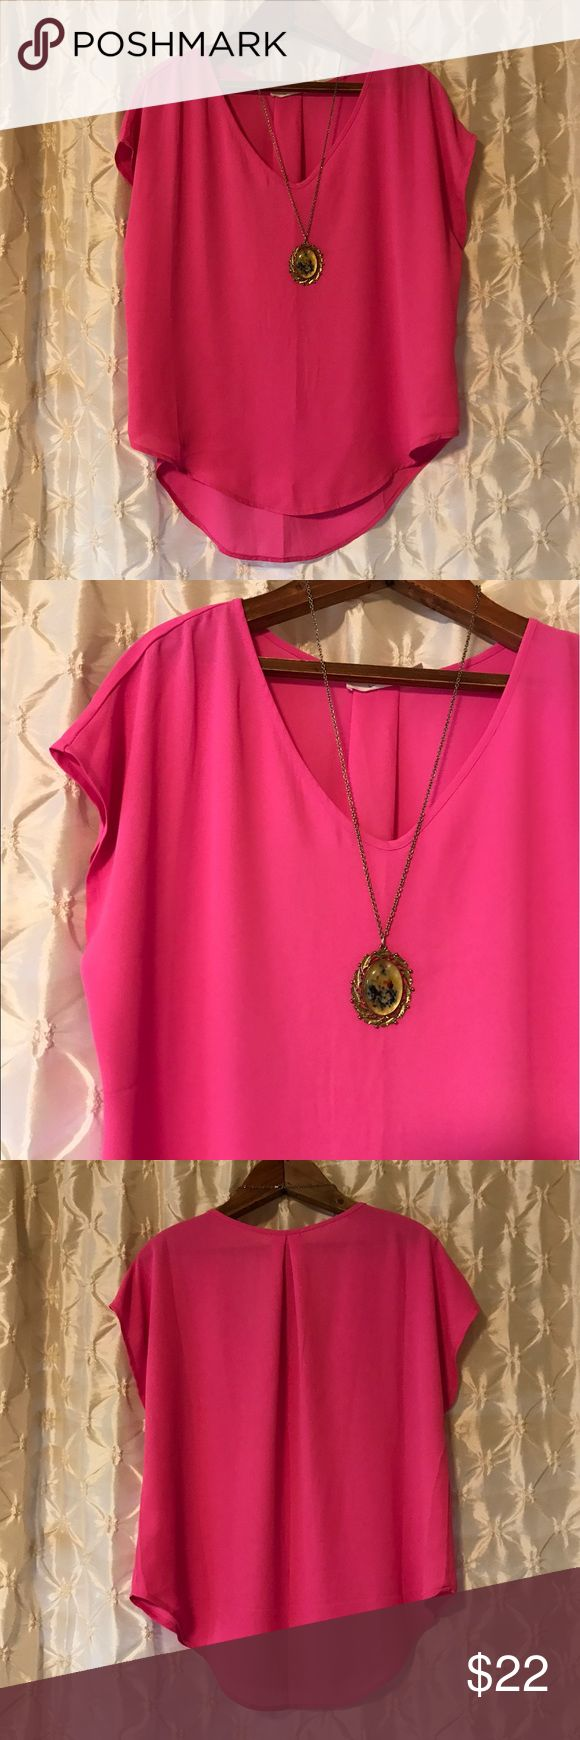 "Nordstrom ""Lush"" hot pink blouse You're looking at a new without tags Nordstrom blouse in size small. Lush brand. Hot pink. Best shown in 2nd pic. High low style, with v neck and capped. sleeves. Shoulder to front hem approx 22"". Light weight and flowy. Perfect! 💙offers 💙20% off discount on bundles 🚫PayPal/trades Lush Tops Blouses"